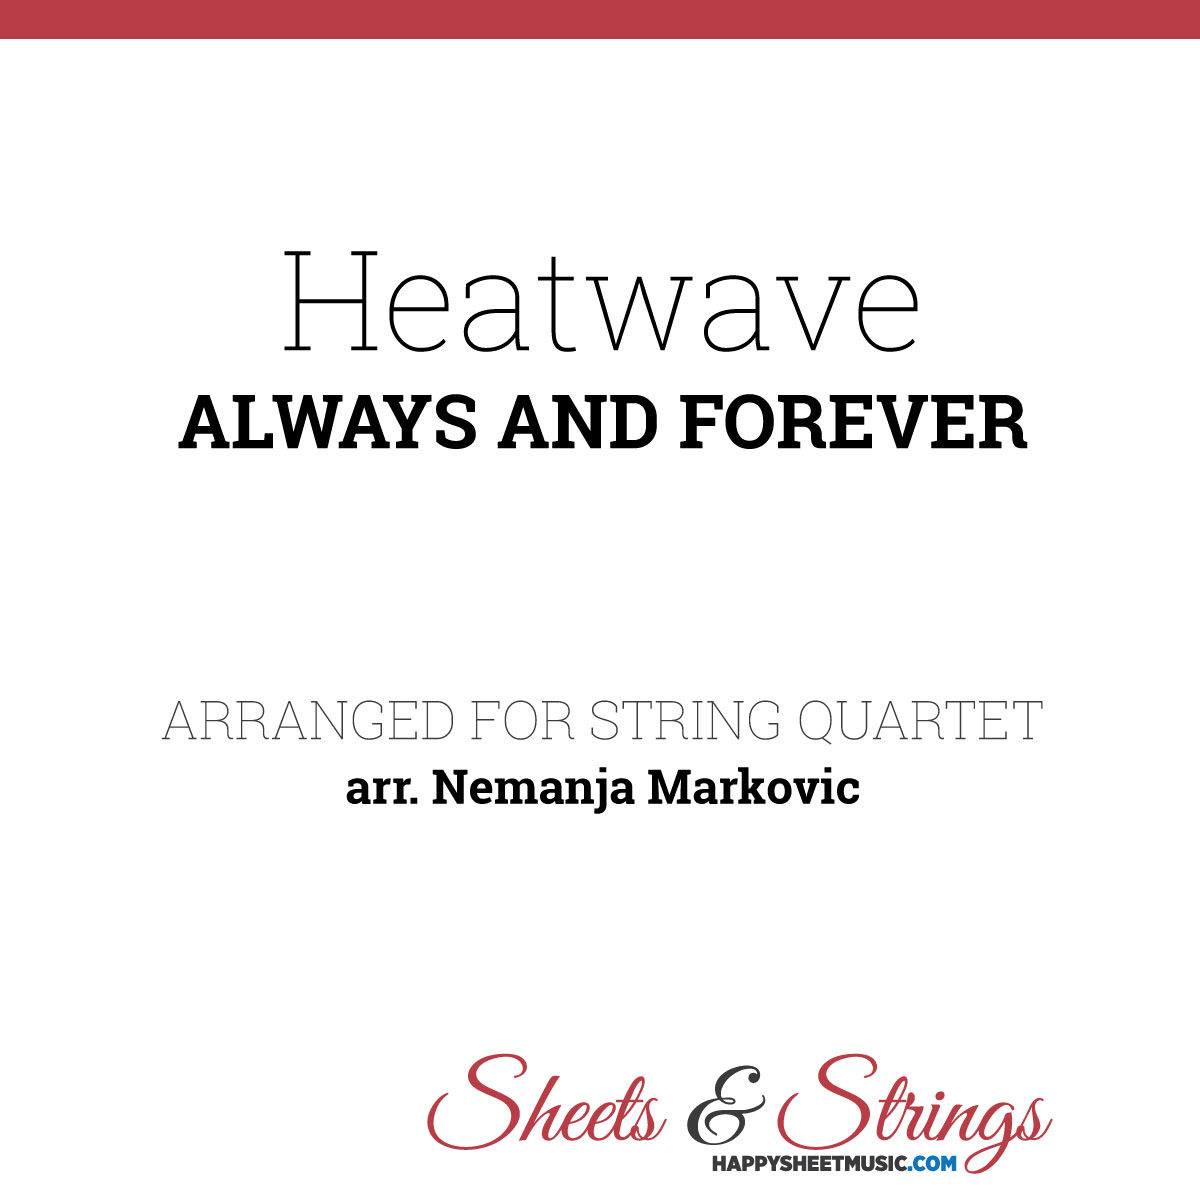 Heatwave - Always And Forever - Sheet Music for String Quartet - Music Arrangement for String Quartet